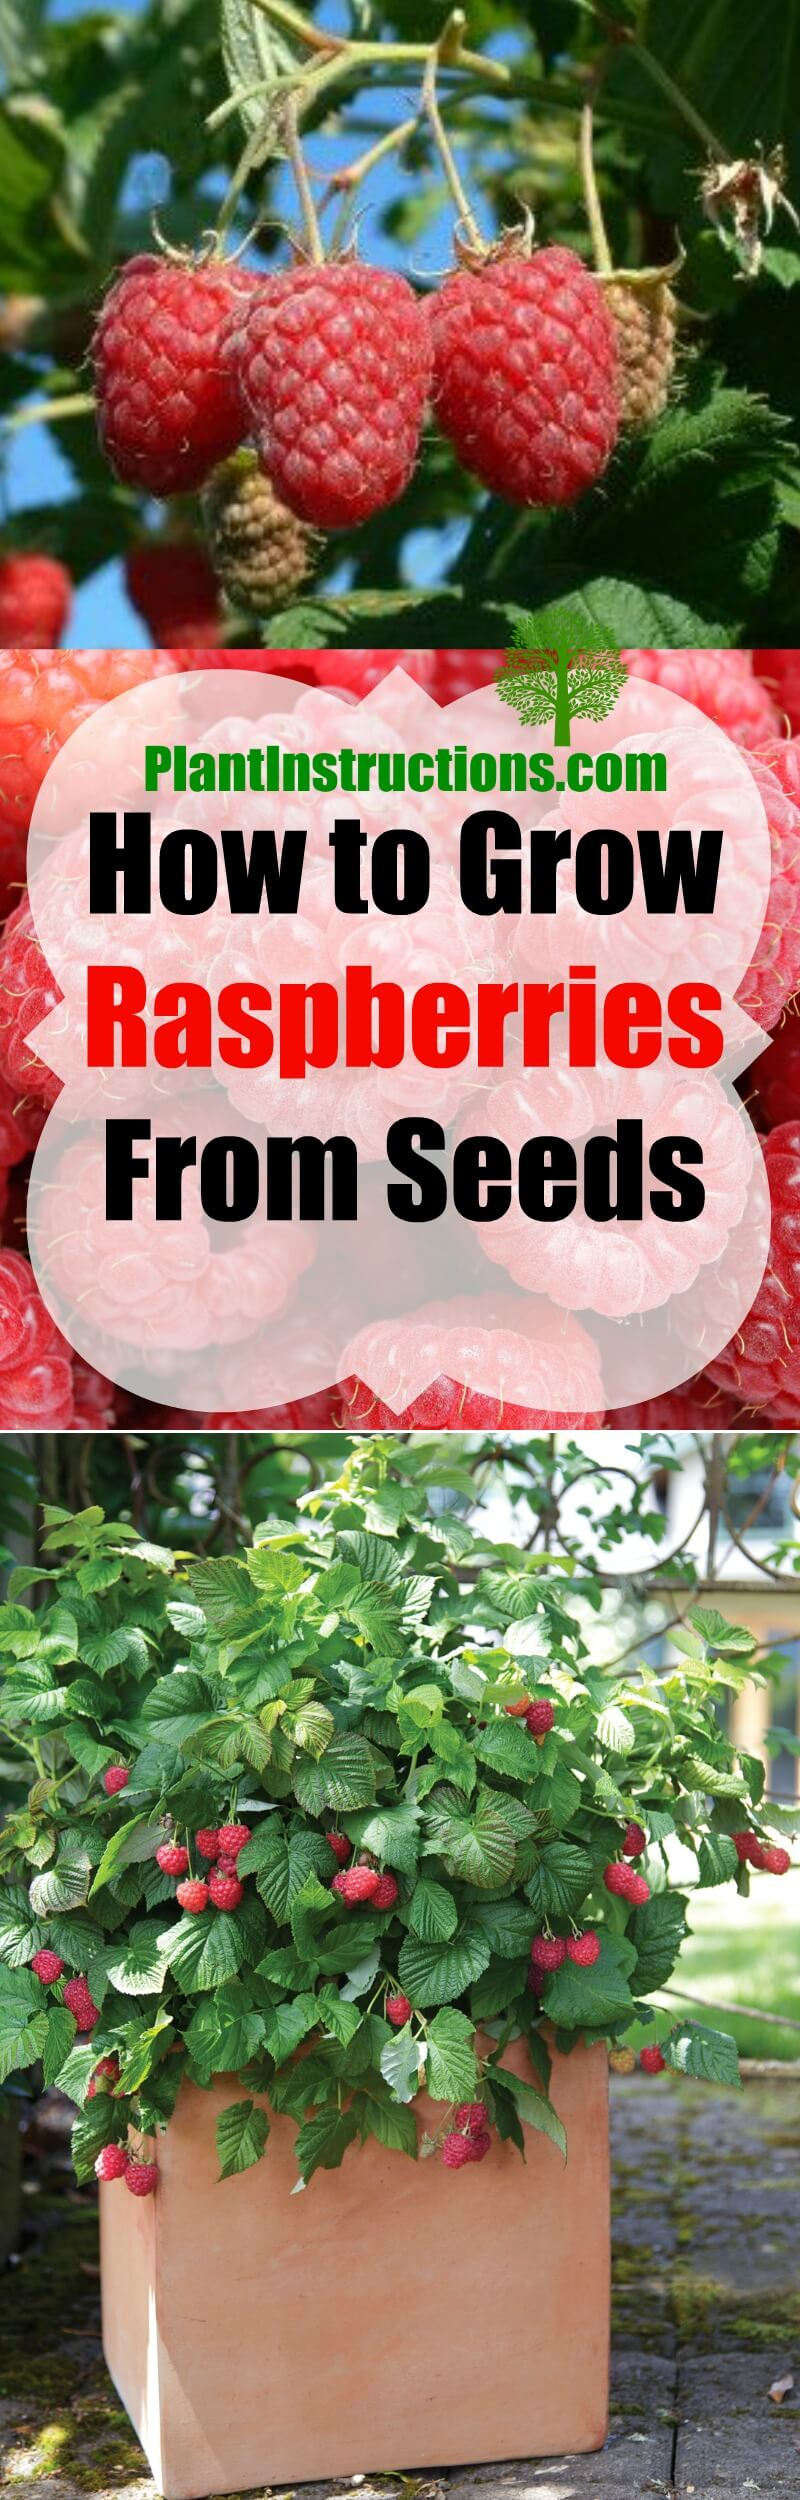 Grow Raspberries From Seeds